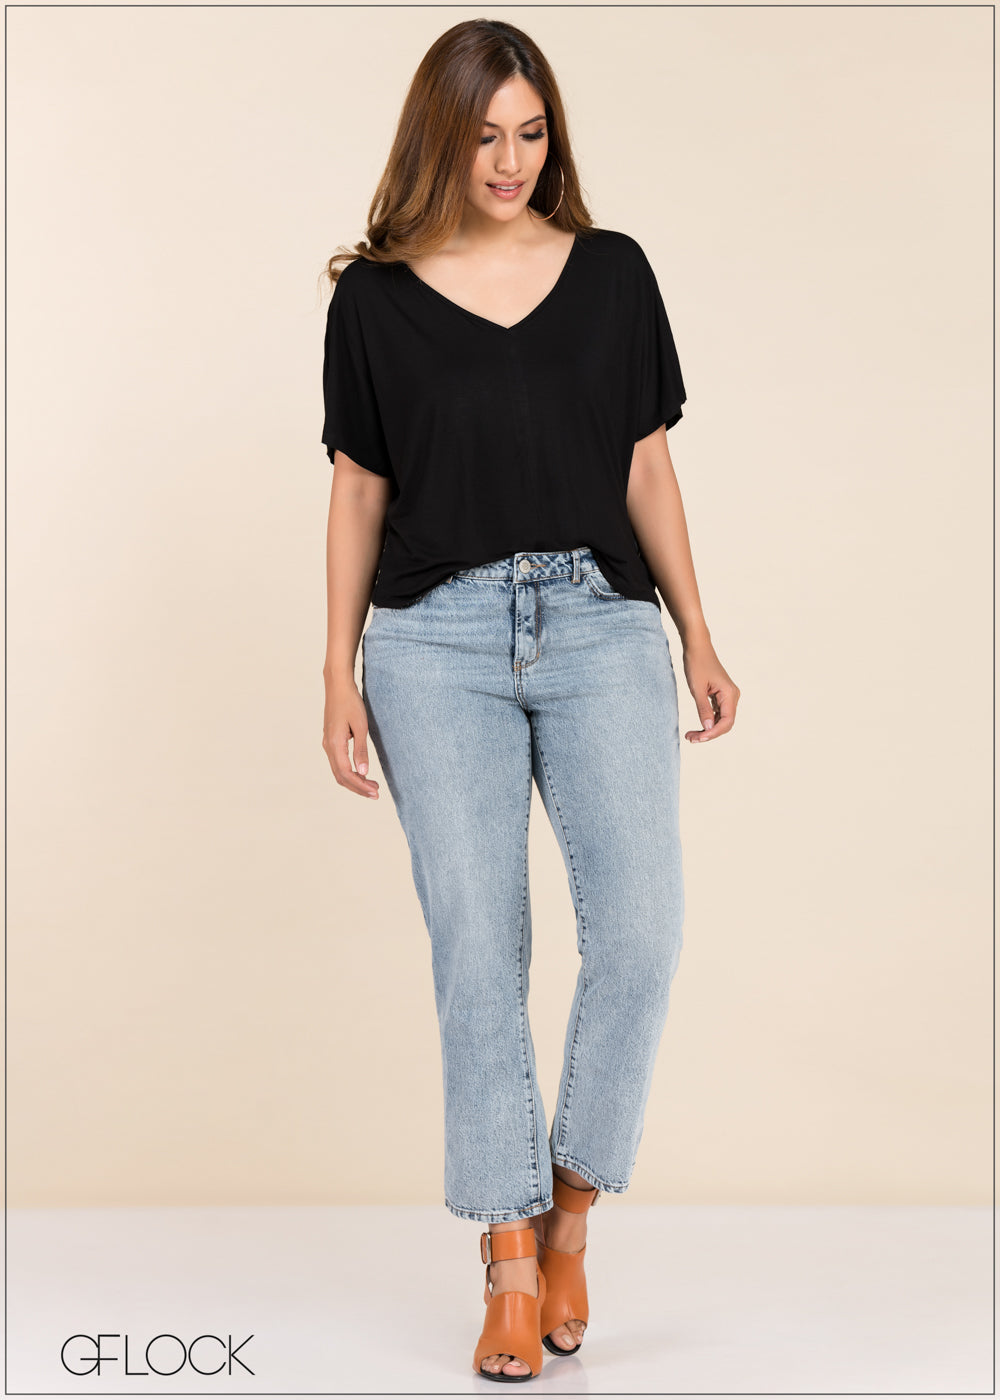 V Neck Loose Fit Top - GFLOCK.LK